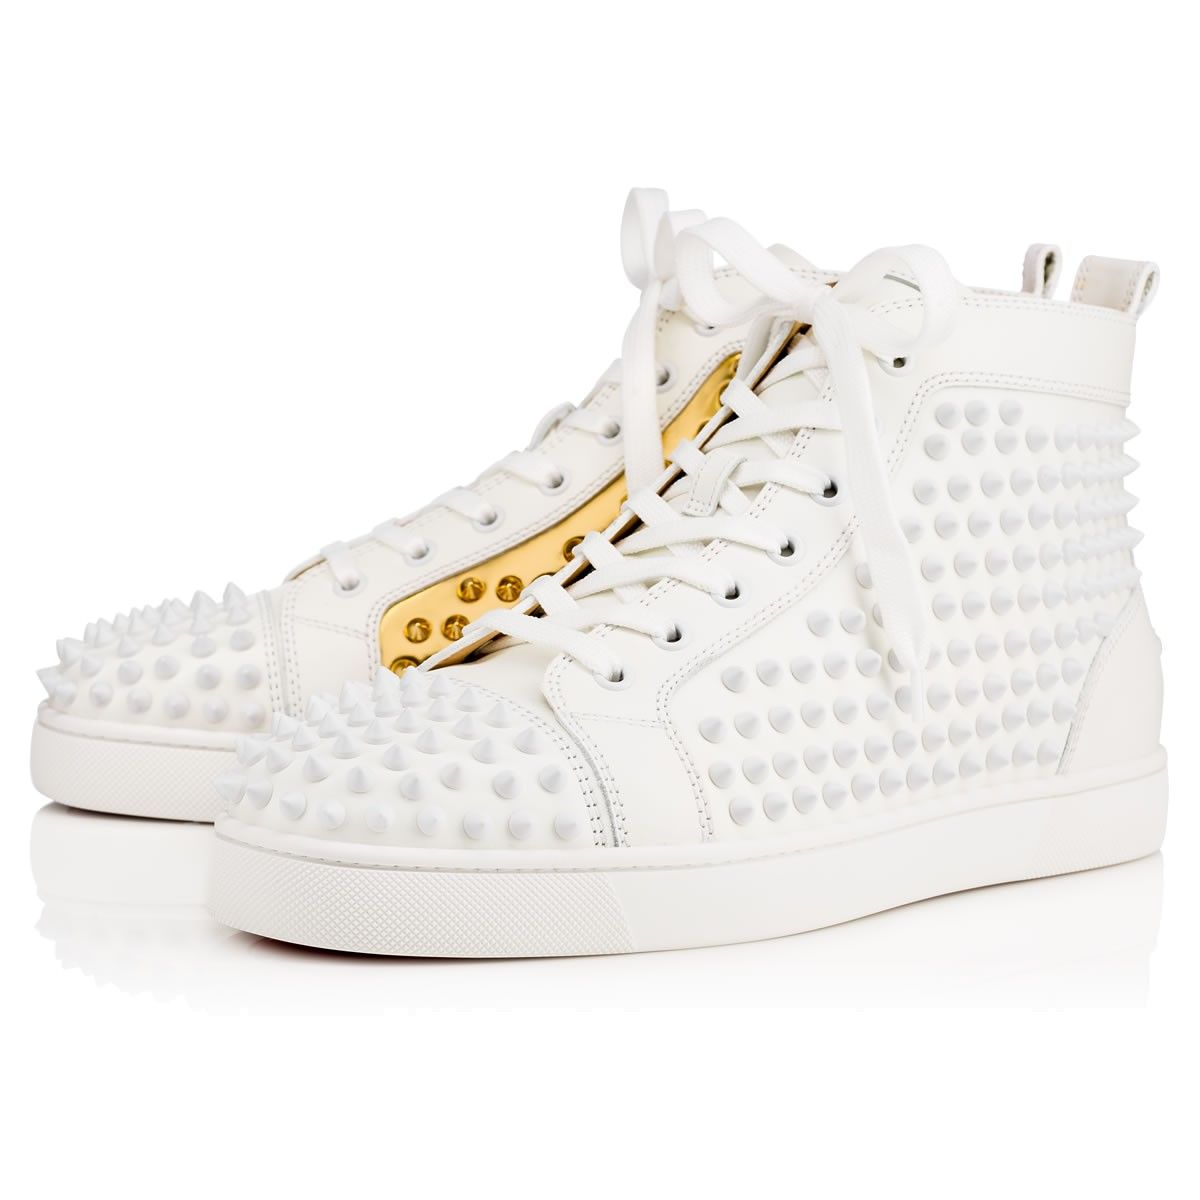 30fc8ec4585 CHRISTIAN LOUBOUTIN Louis Spikes Men s Flat Latte Gold Leather - Men Shoes  - Christian Louboutin.  christianlouboutin  shoes